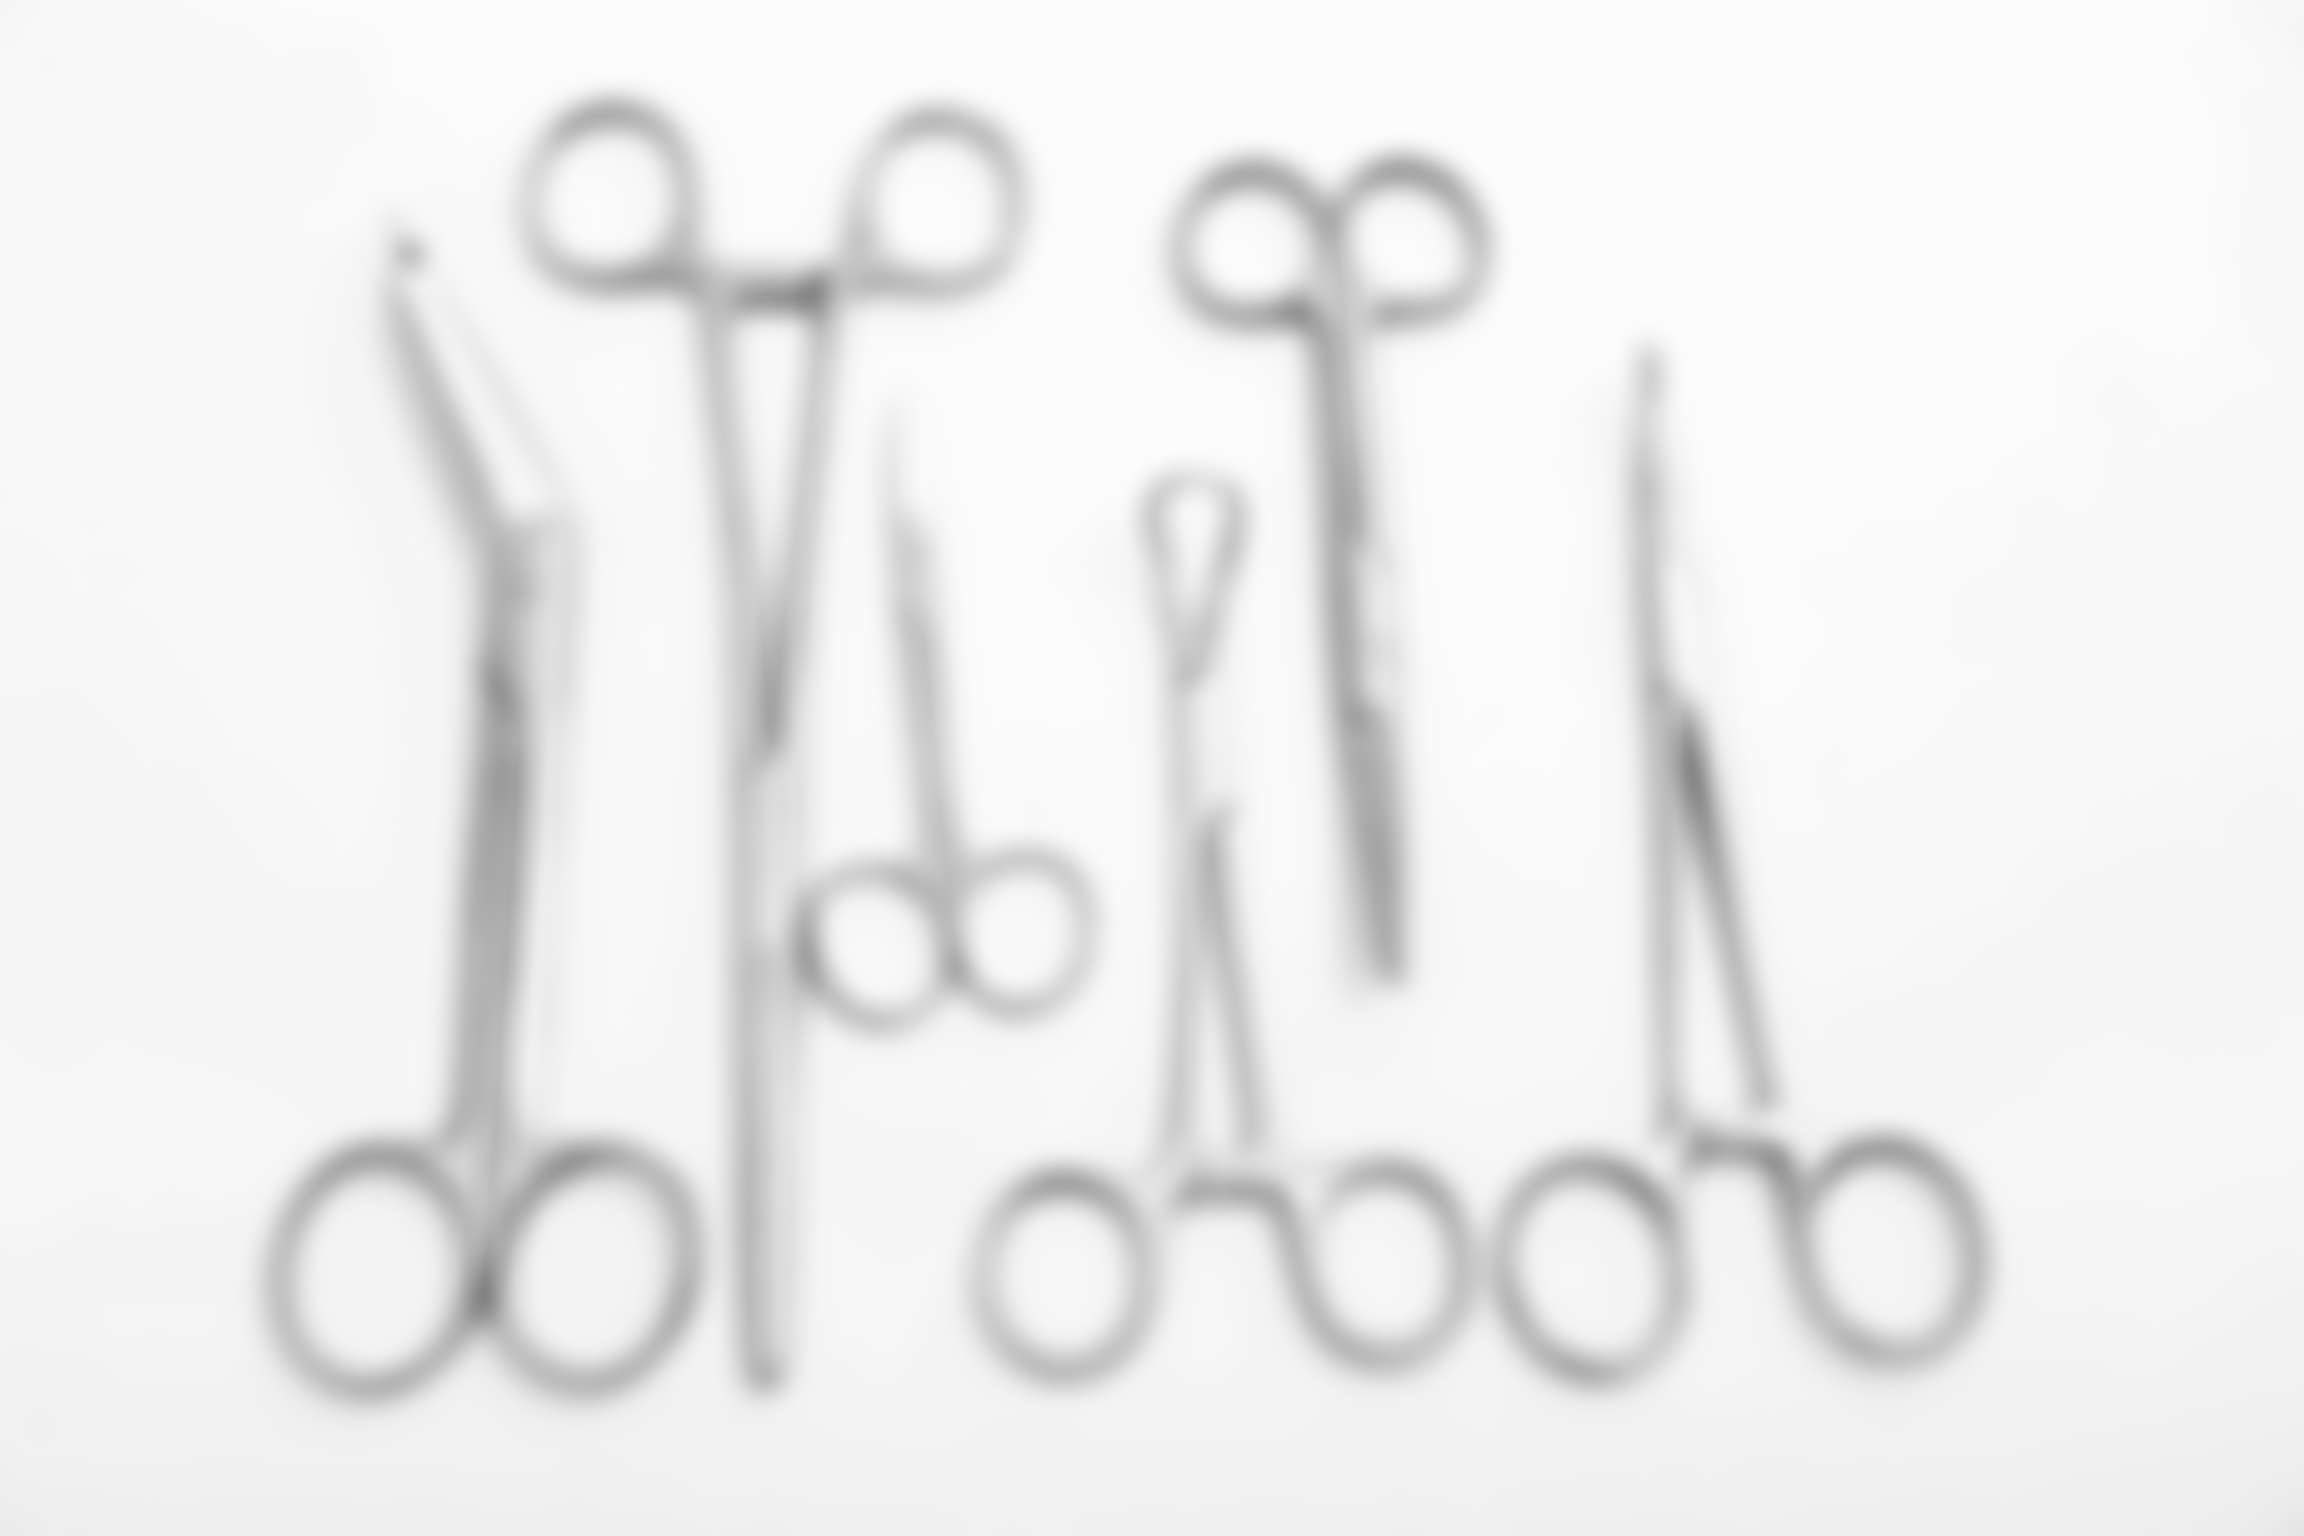 Flat lay of medical instruments on white background